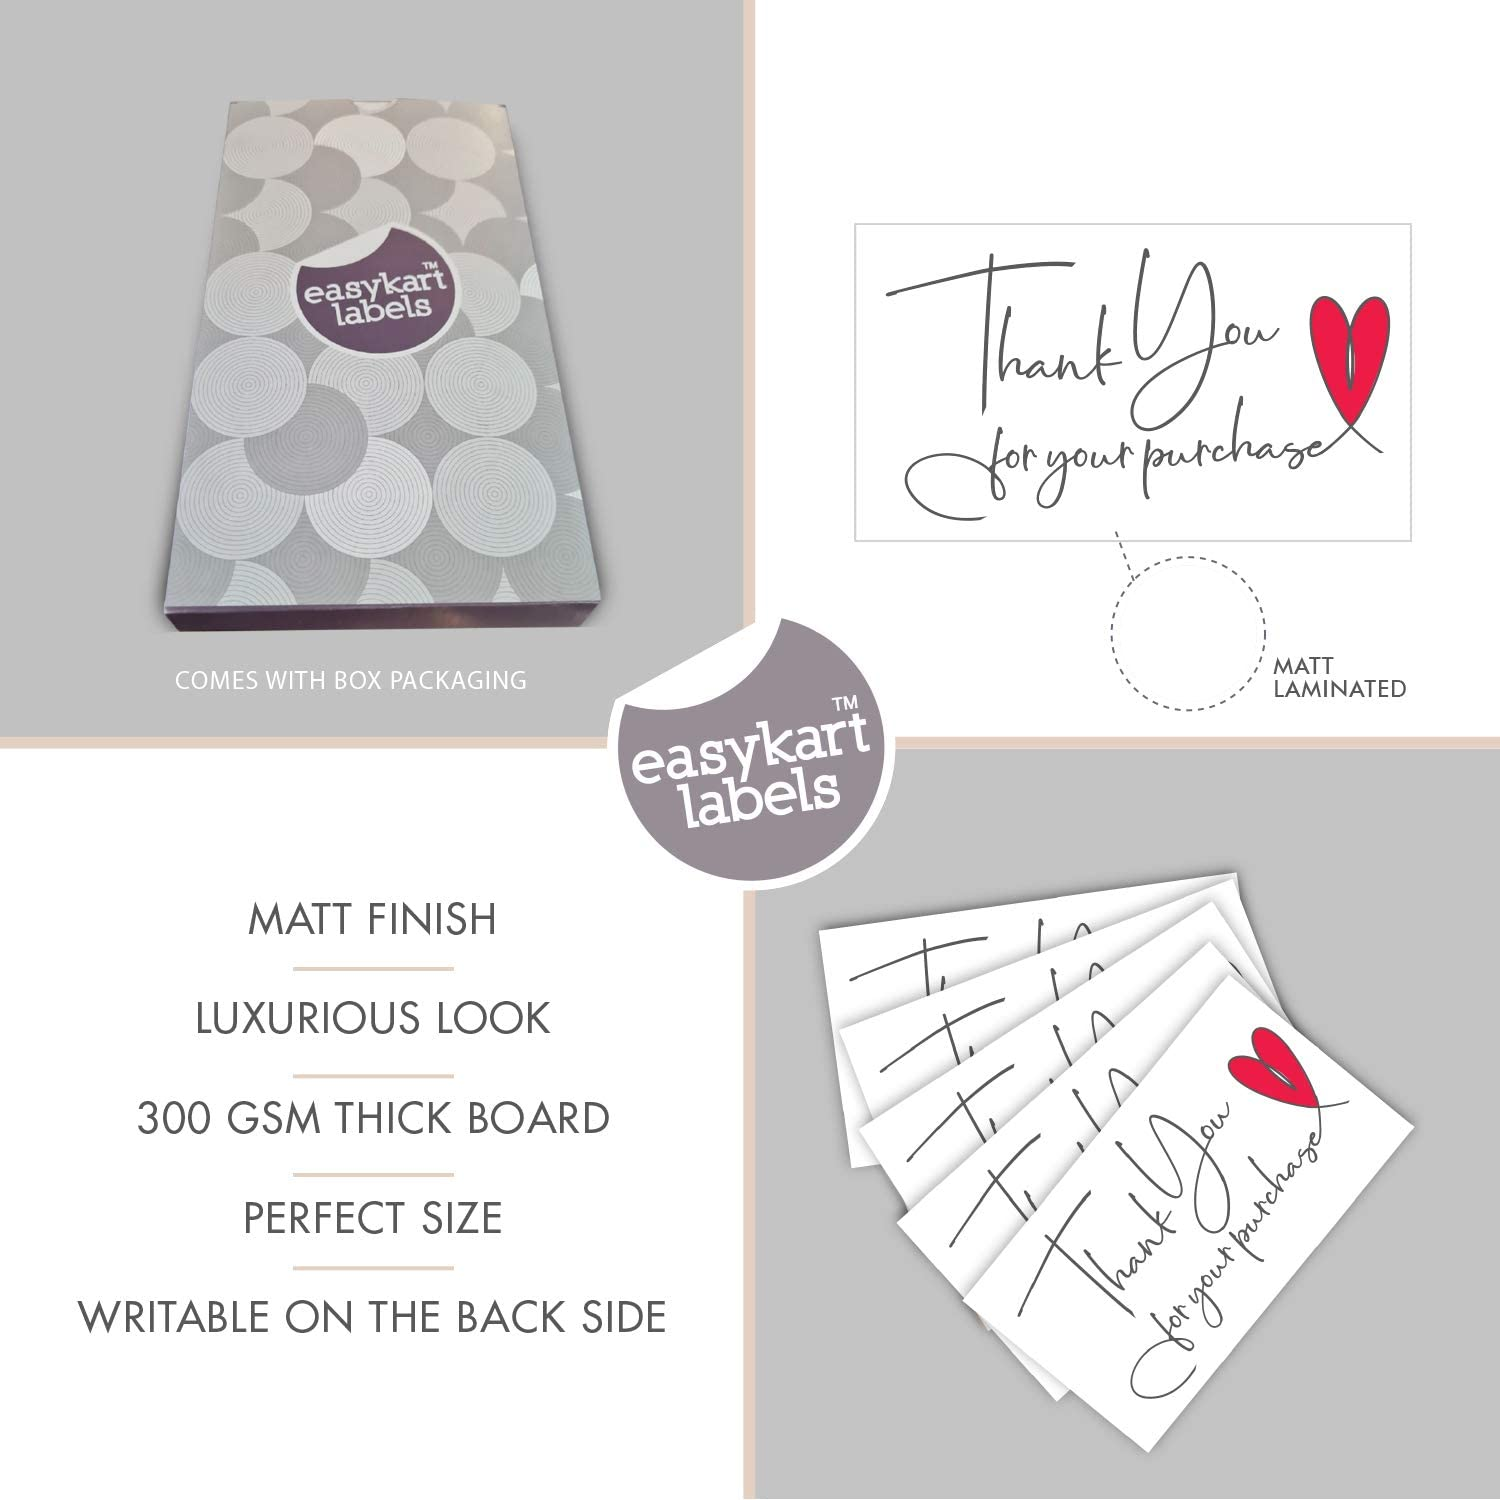 Highly Recommended For Small Business Owners 120 Thank You For Your Purchase Cards Business Card sized 300 Gsm Thick Board